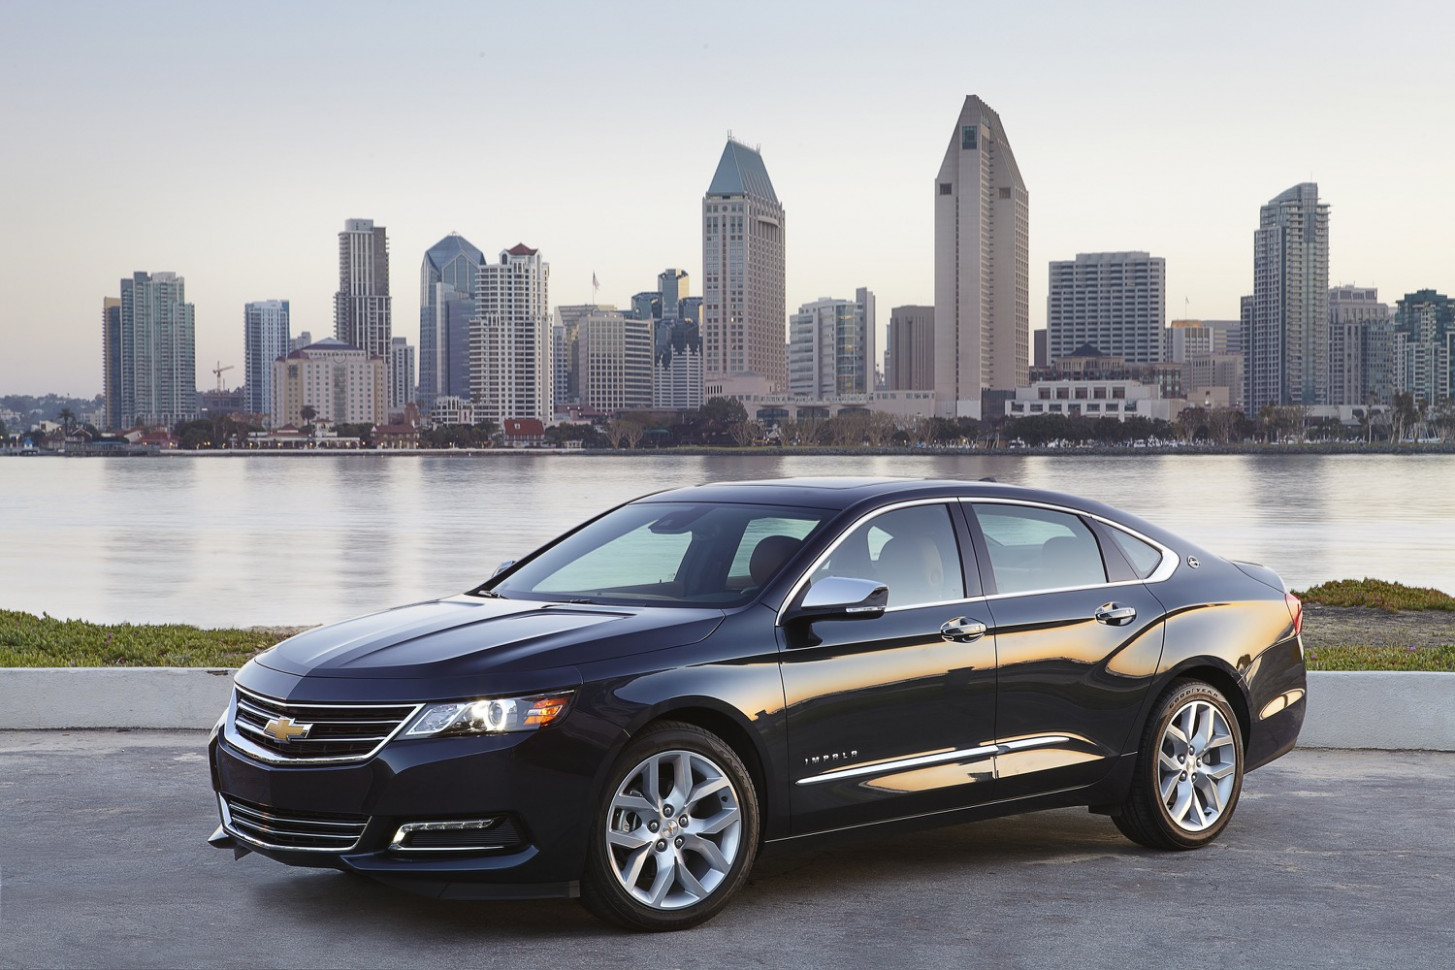 6 Chevrolet Impala Gets $6,6 Price Hike For Base Model | GM ..